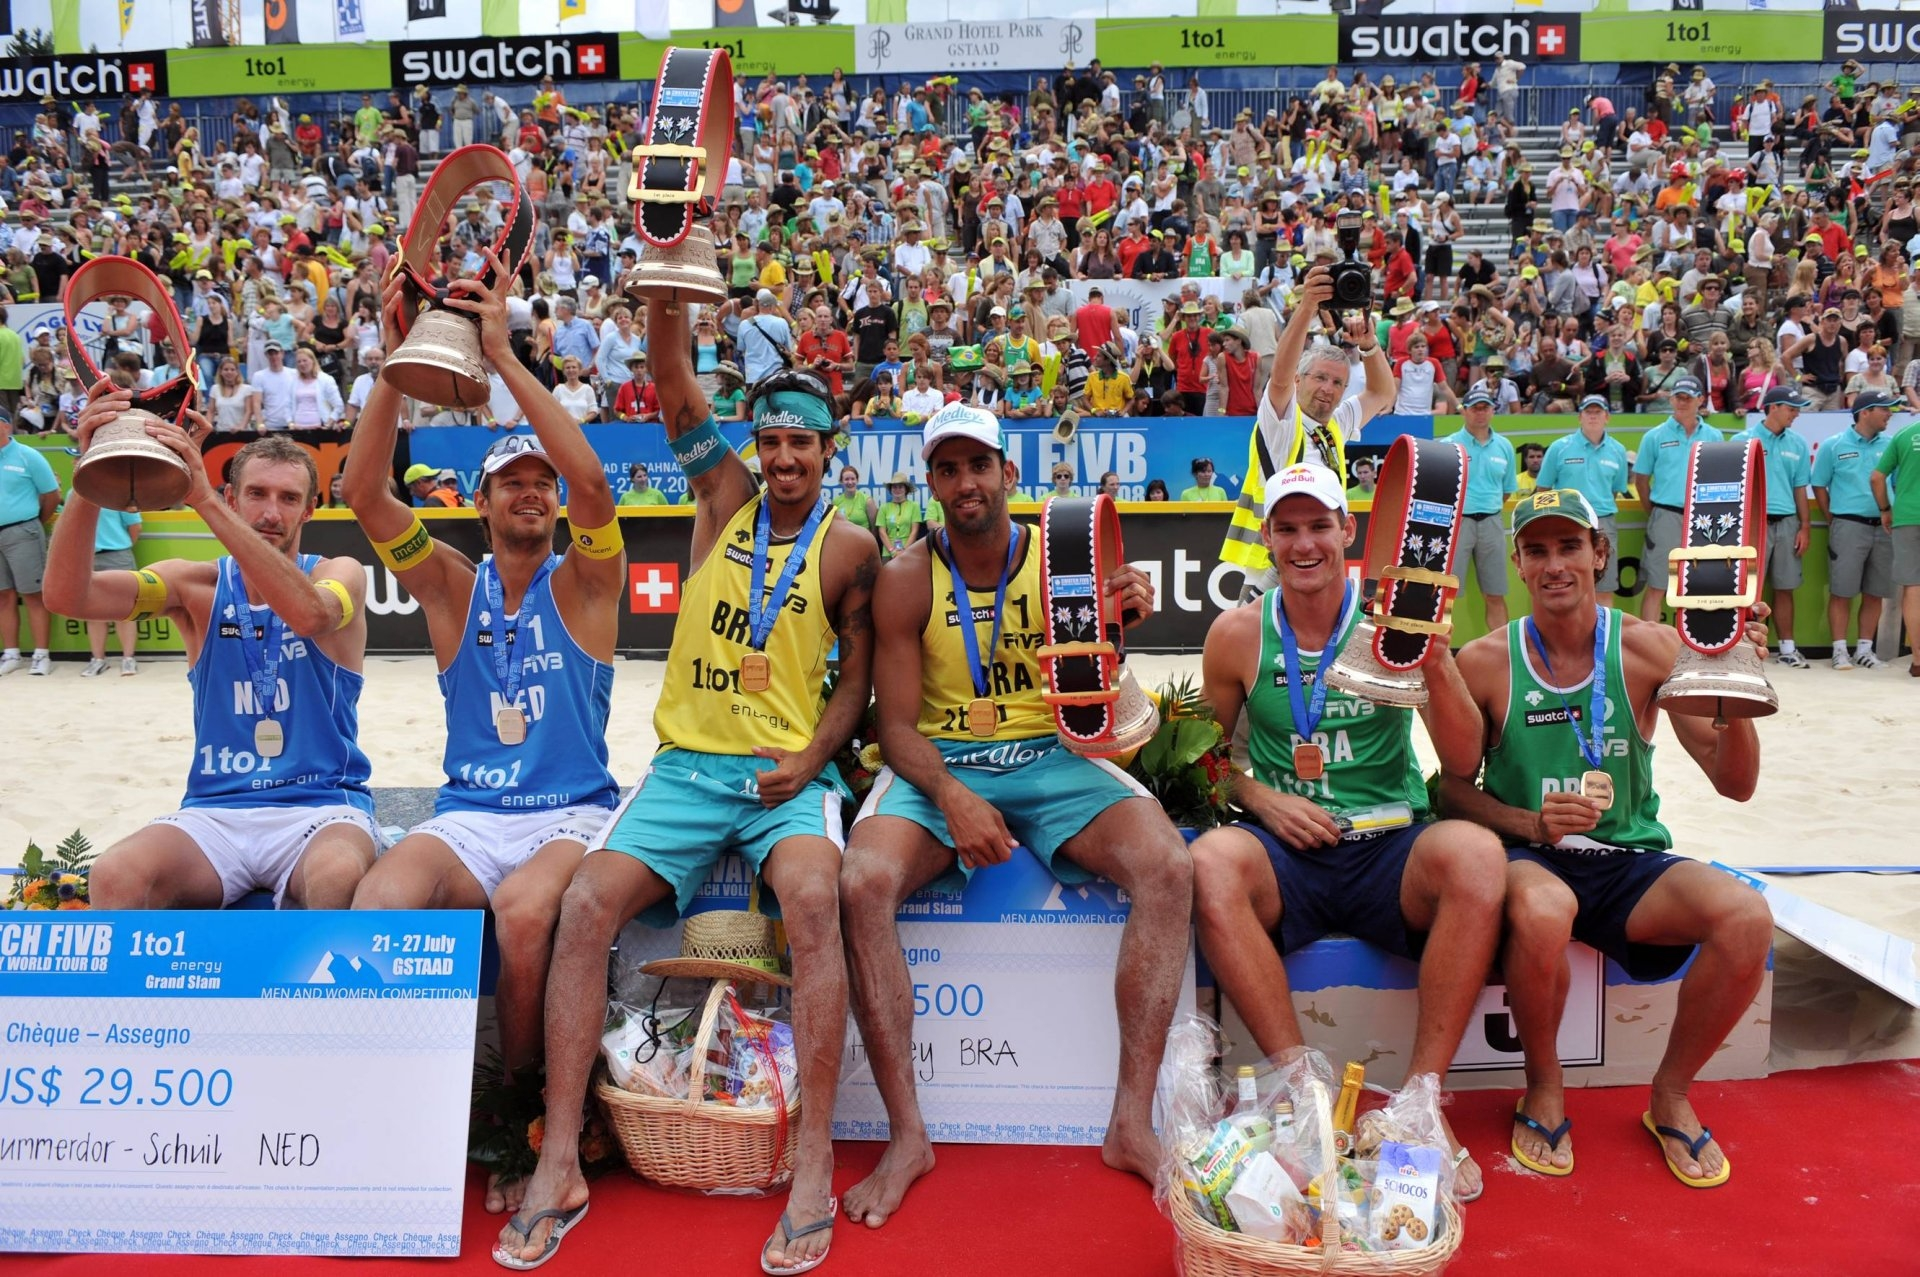 In 2008, Alison and Emanuel were third behind Brazilians Pedro/Harley and Dutch Nummerdo/Schuil (Photocredit: FIVB)